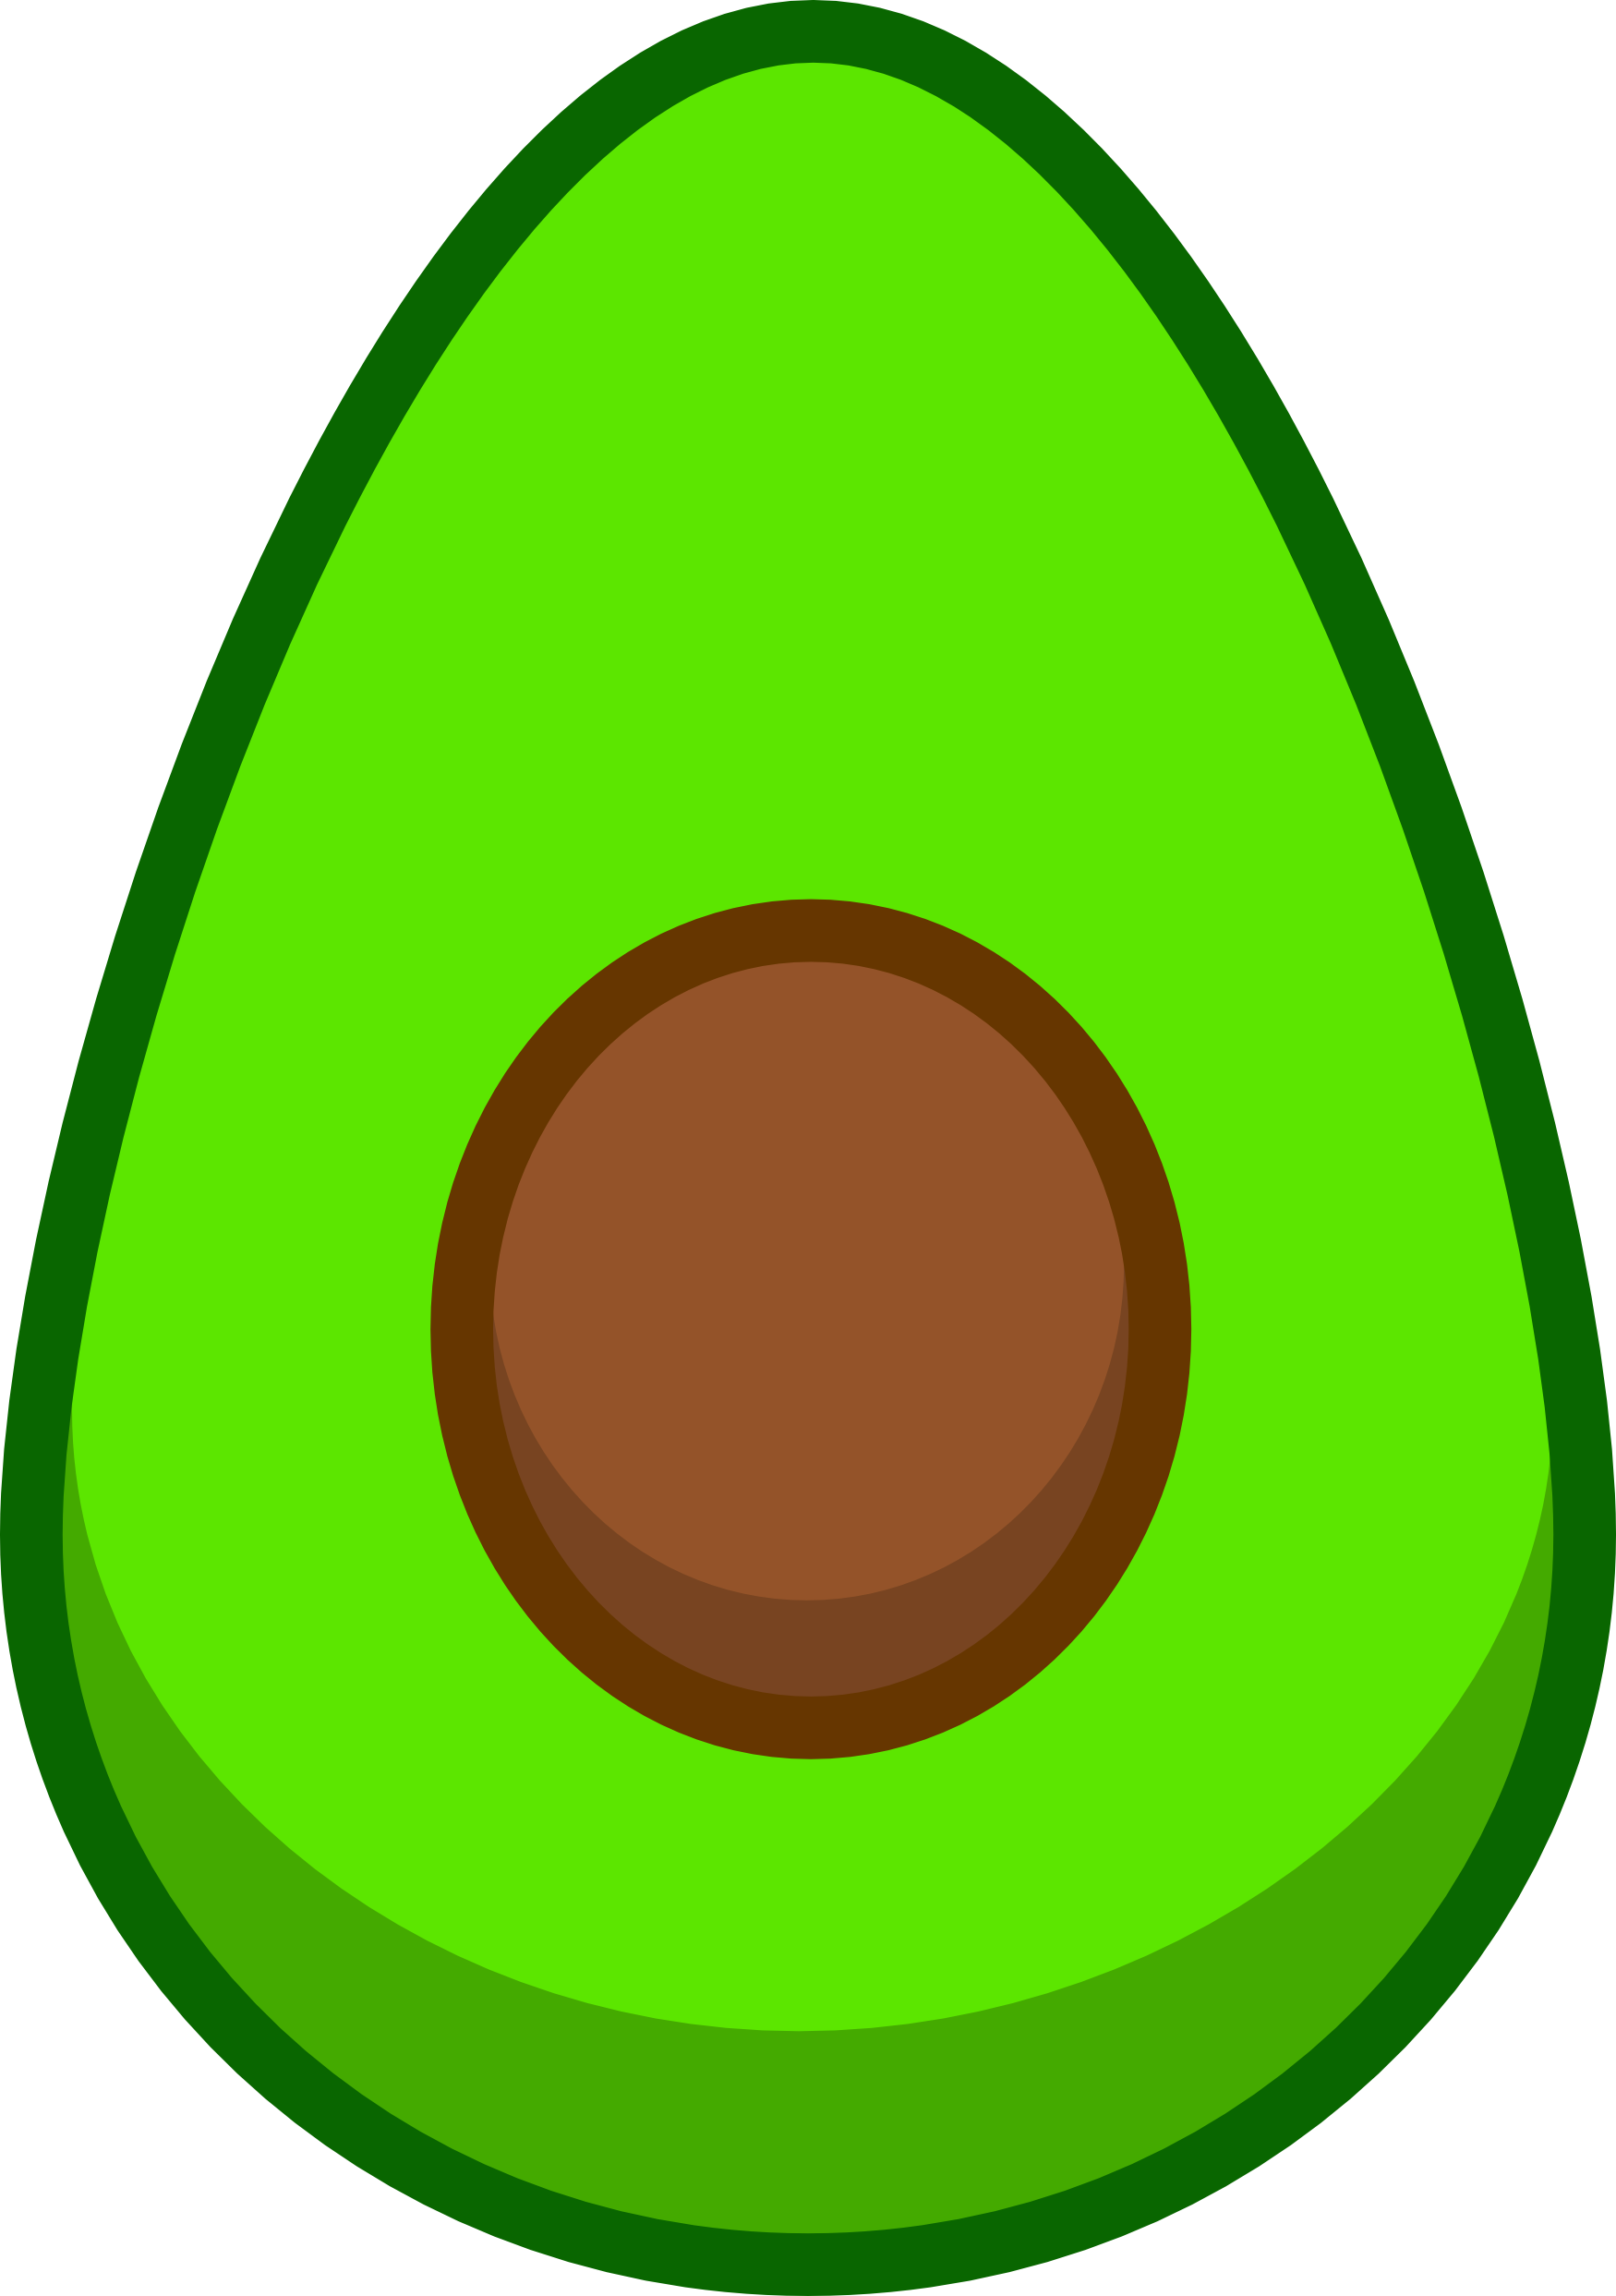 Vector vegetables illustrator. Cute avocado design for